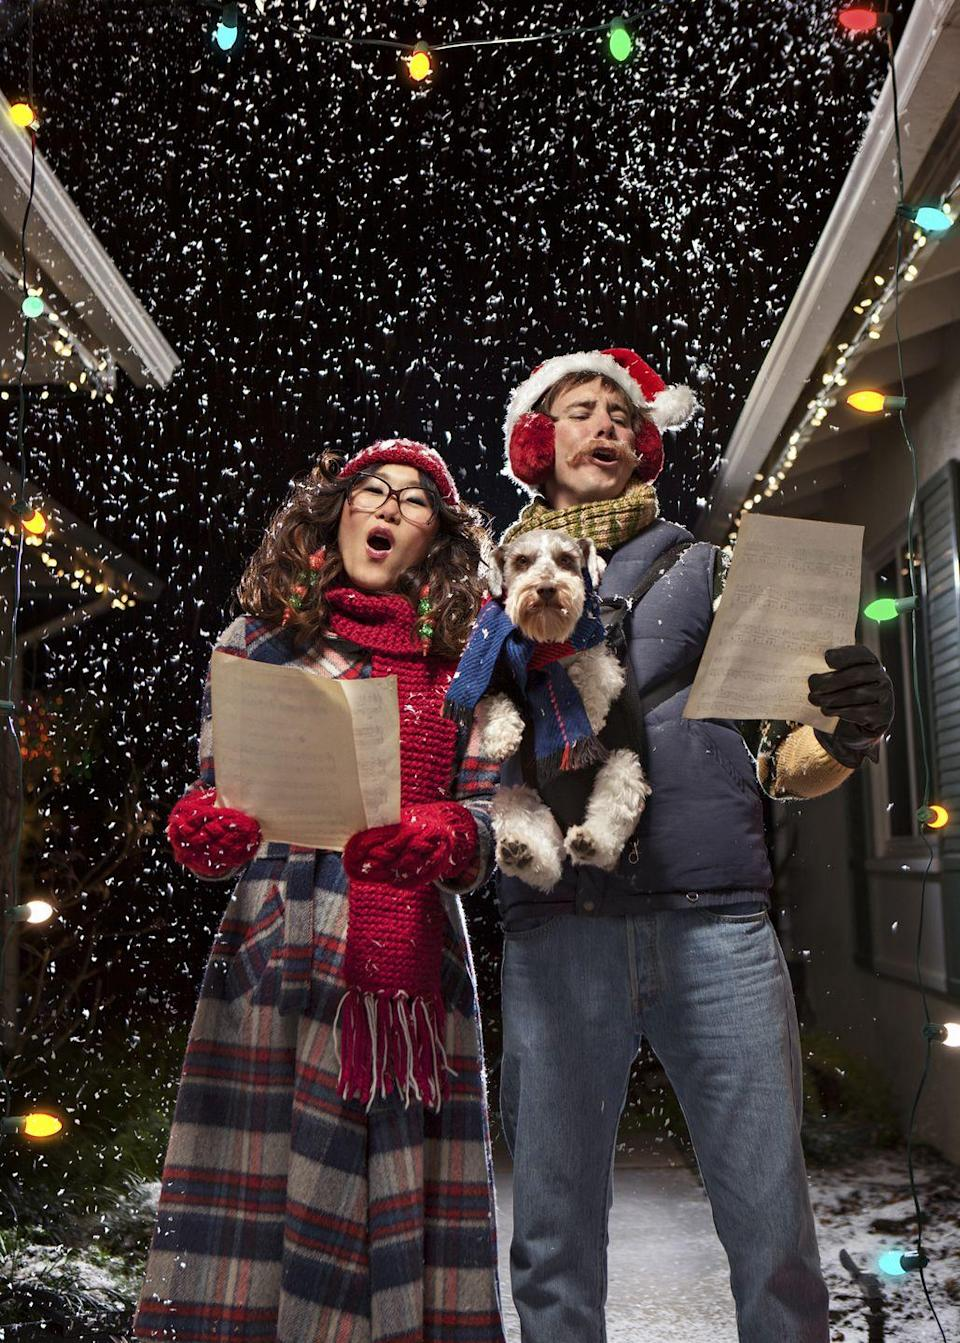 <p>Call around the neighborhood beforehand and map out which houses would like to hear you belt out some tunes on Christmas Day or another time during the festive season. Then make the rounds after dinner. Just remember to bring flashlights if your street isn't well-lit. </p>